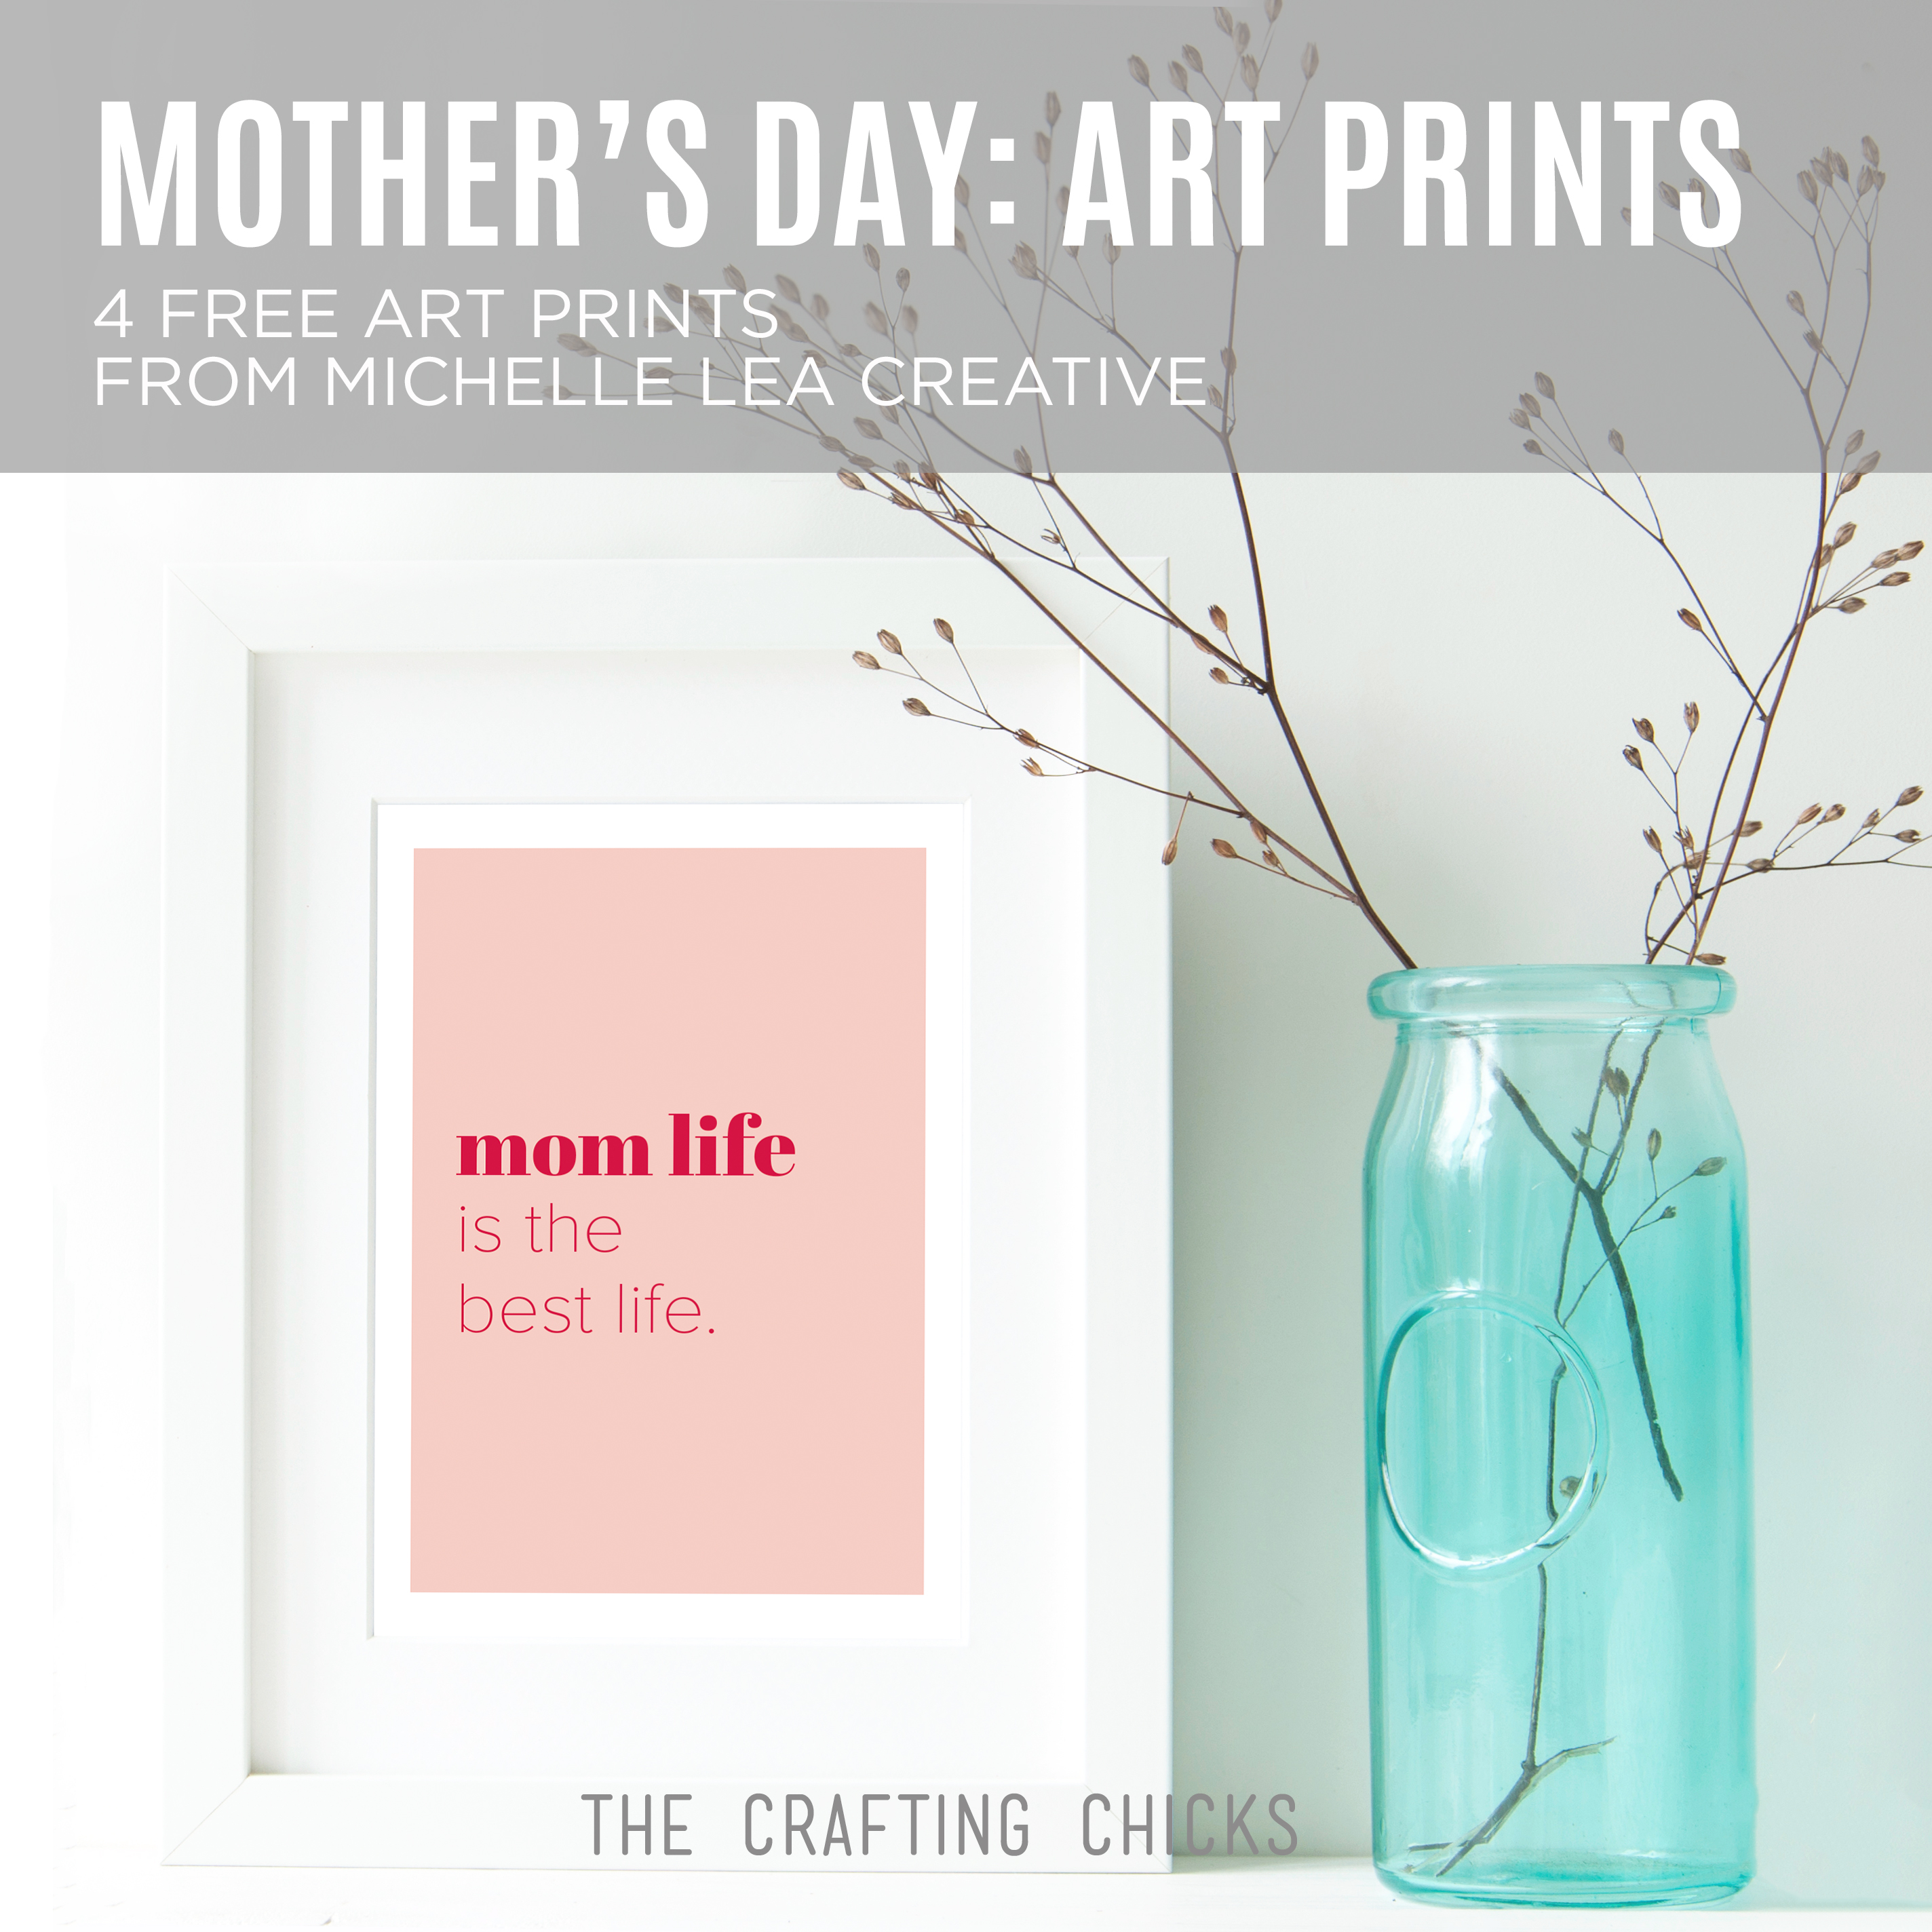 Mother's Day Art Prints